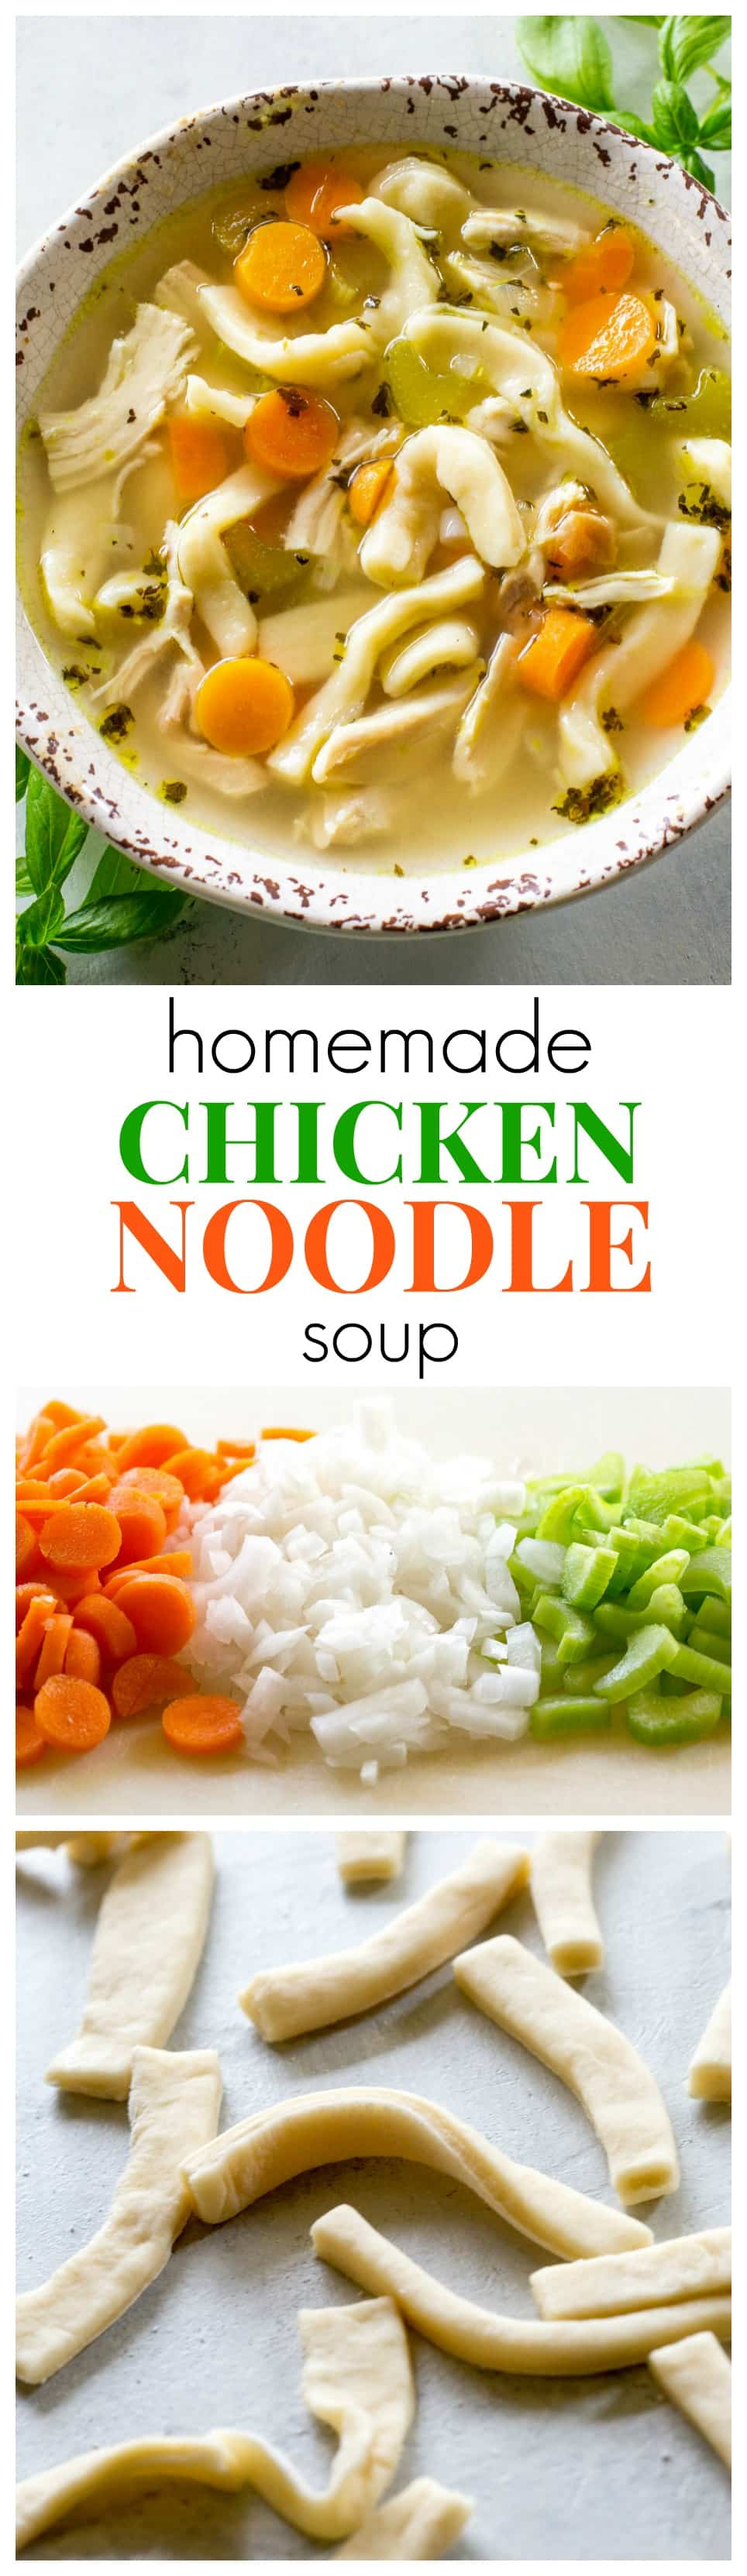 Homemade chicken noodle soup a recipe for homemade noodles homemade chicken noodle soup tried and true comfort food a recipe for homemade noodles forumfinder Images